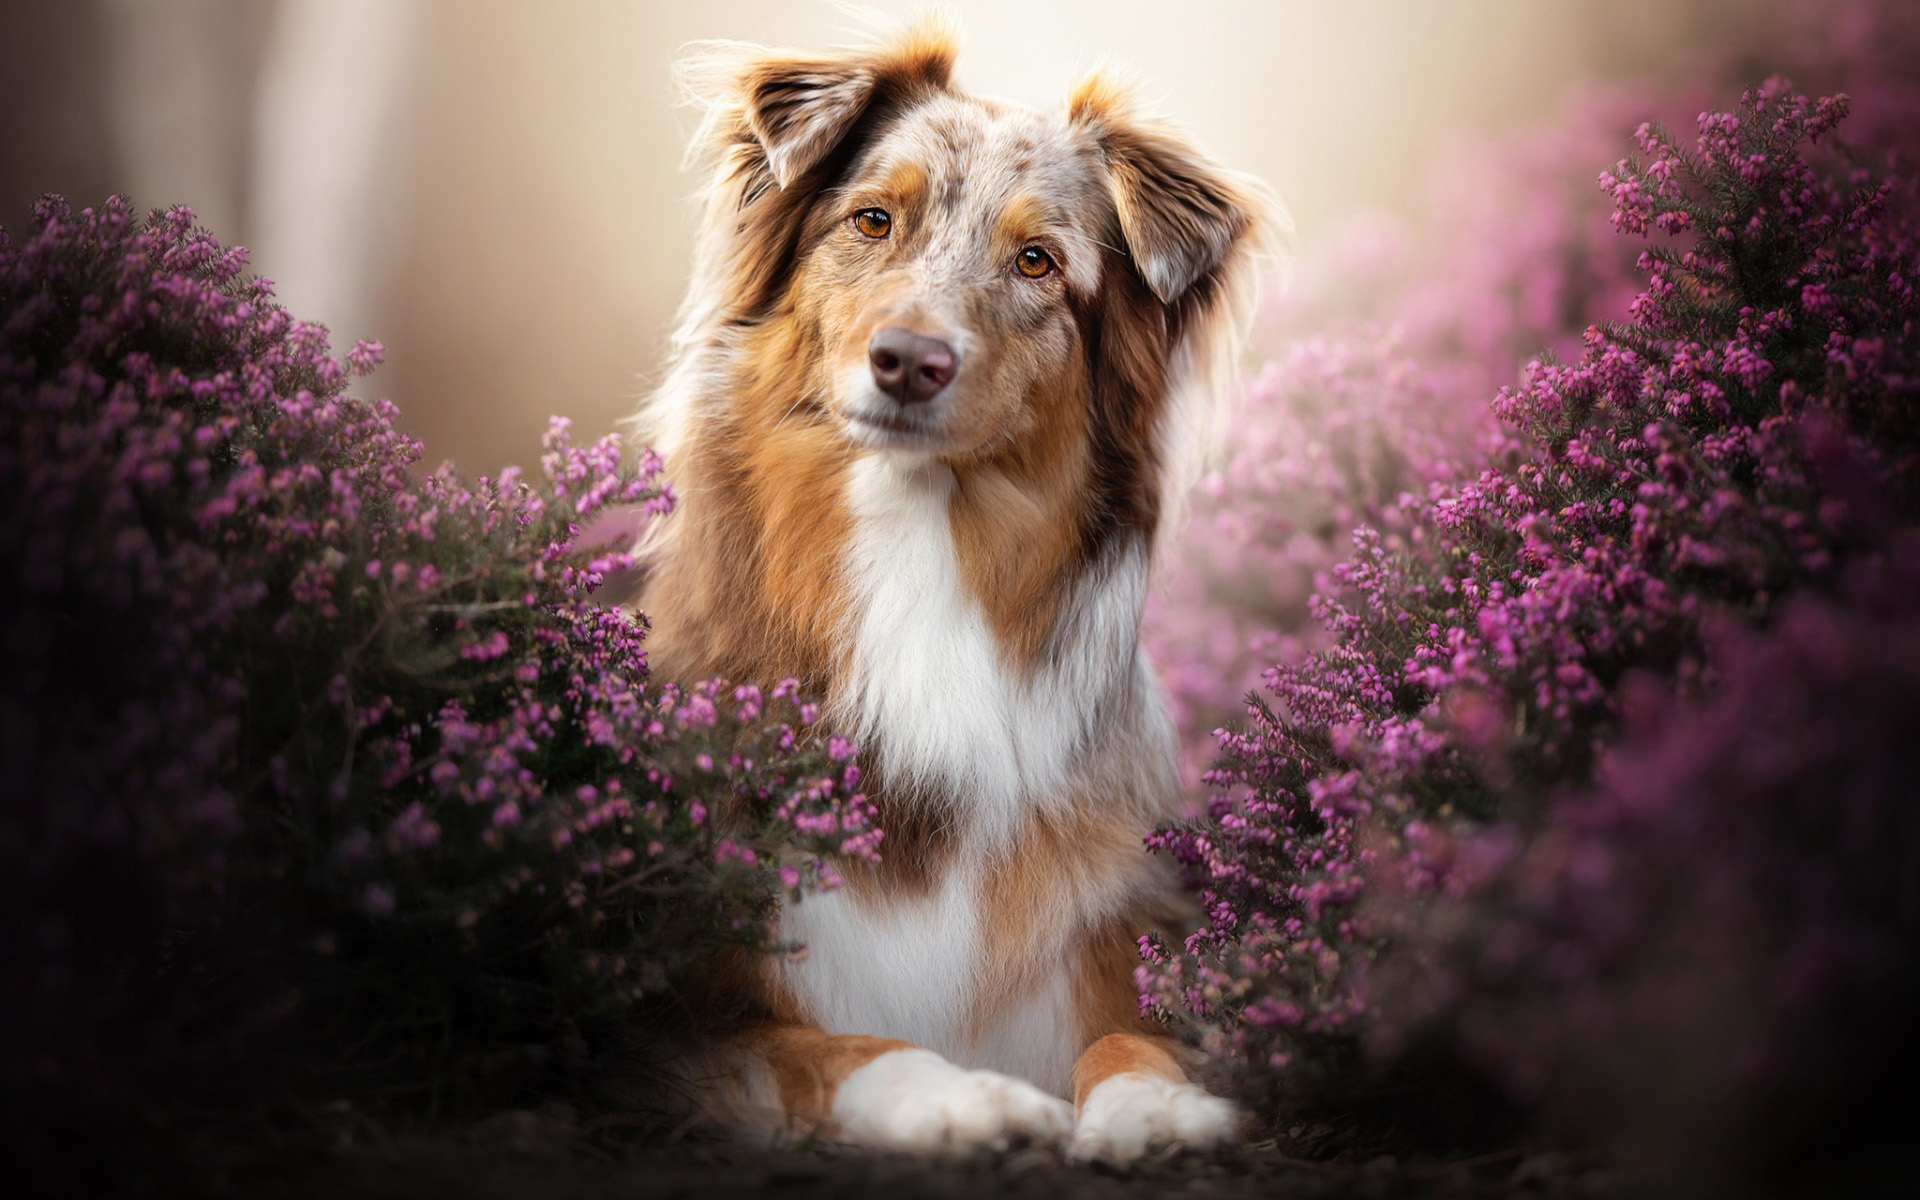 Brown Aussie, lavanda, close-up, bokeh, Australian Shepherd, pets, cani, cute animals, Australiano, Australian Shepherd Dog, Aussie Dogs